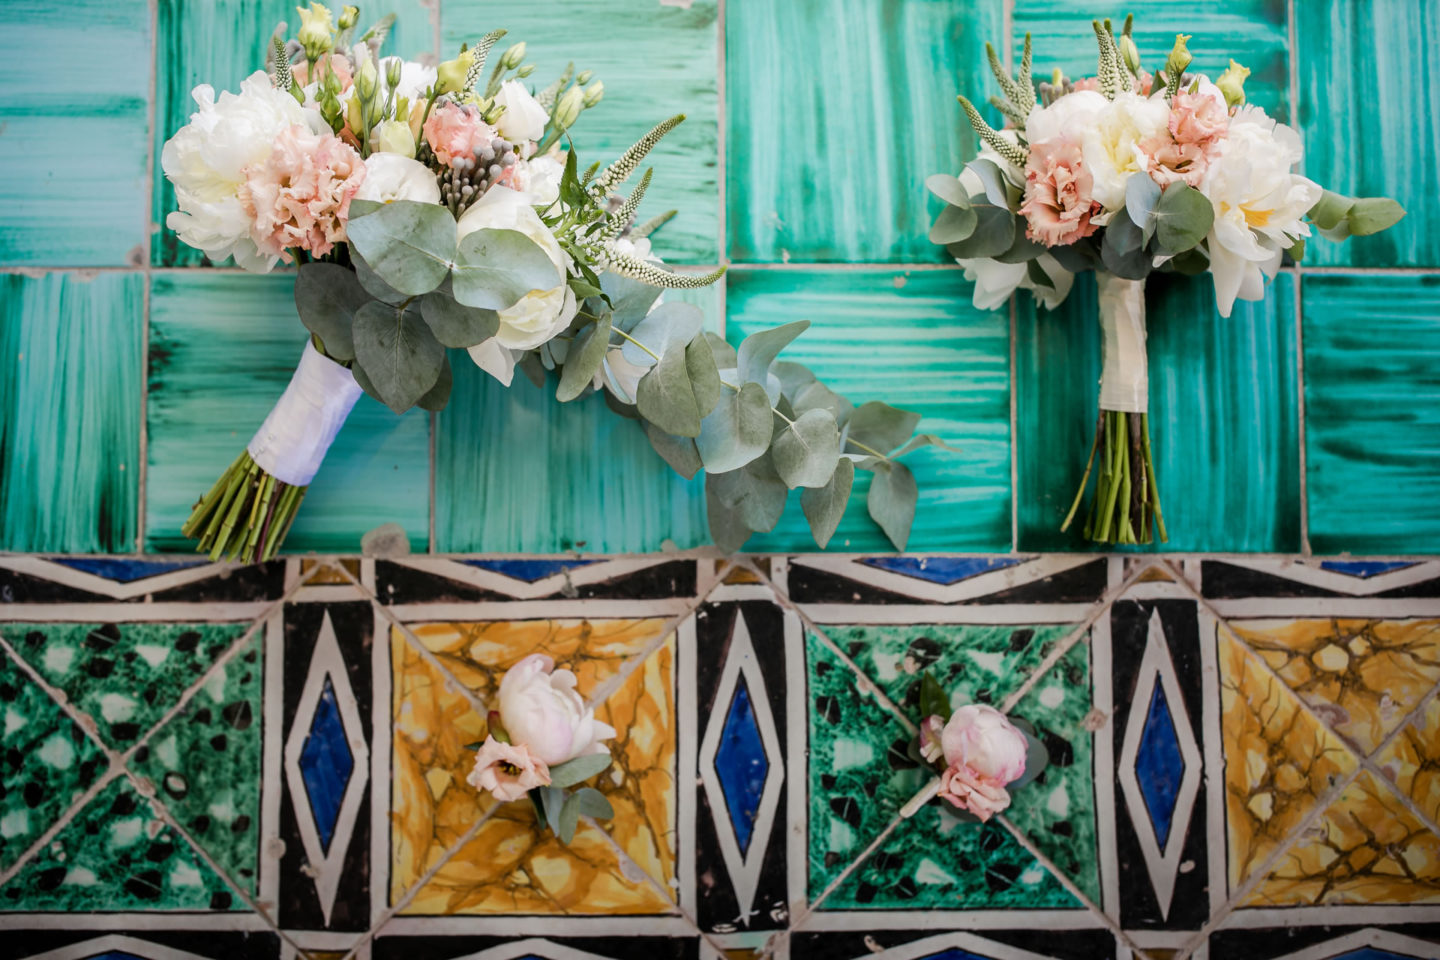 Composition - 3 :: Wedding in Positano. Sea and love :: Luxury wedding photography - 2 :: Composition - 3